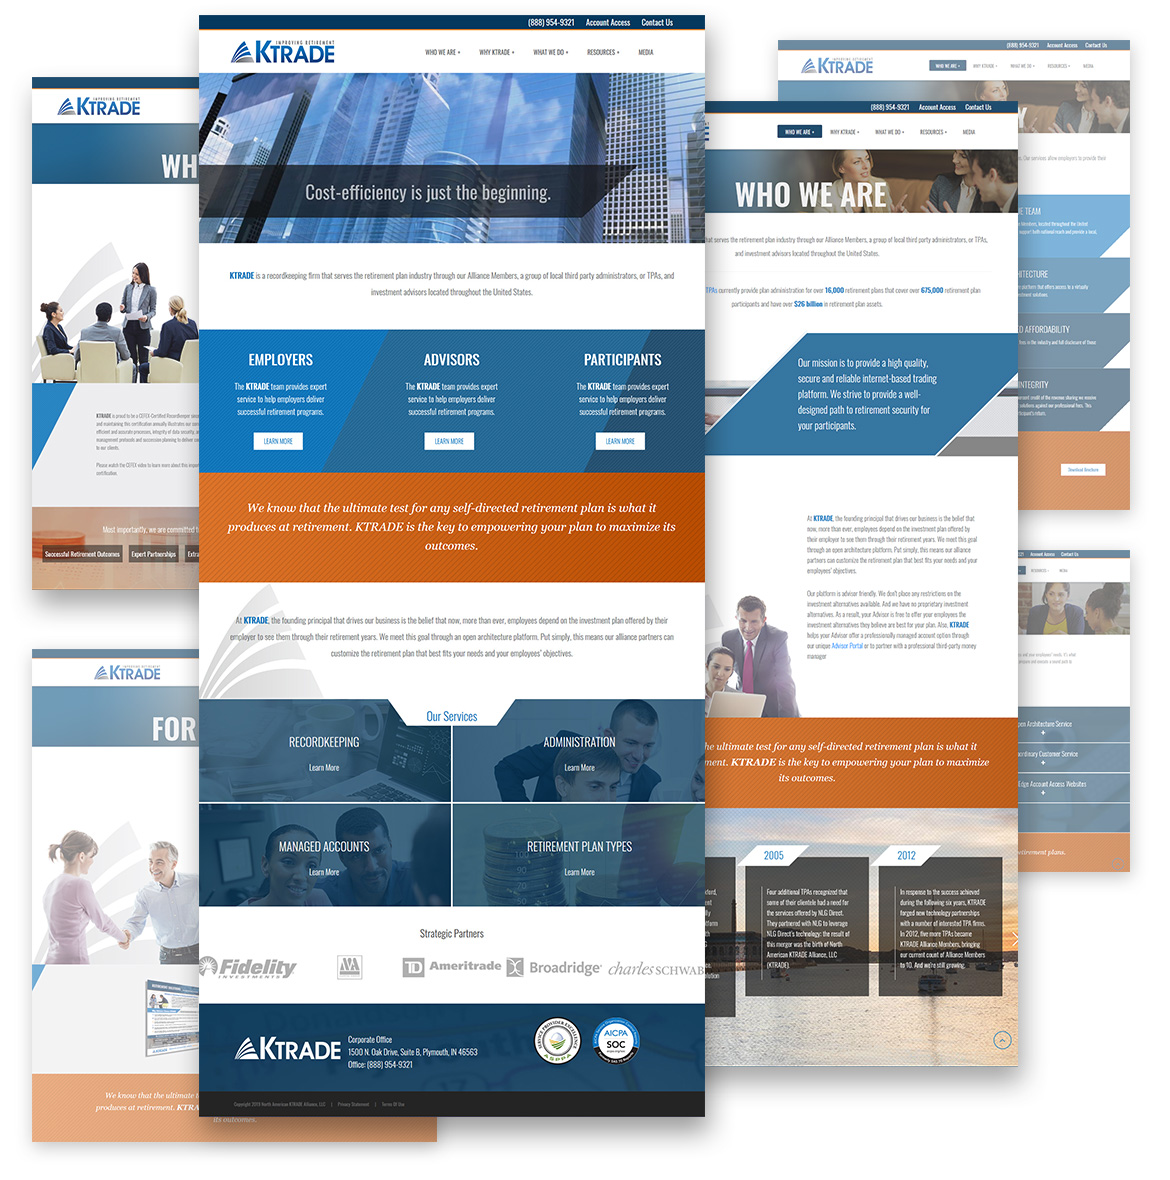 Flat composition showcasing full KTrade webpage designs